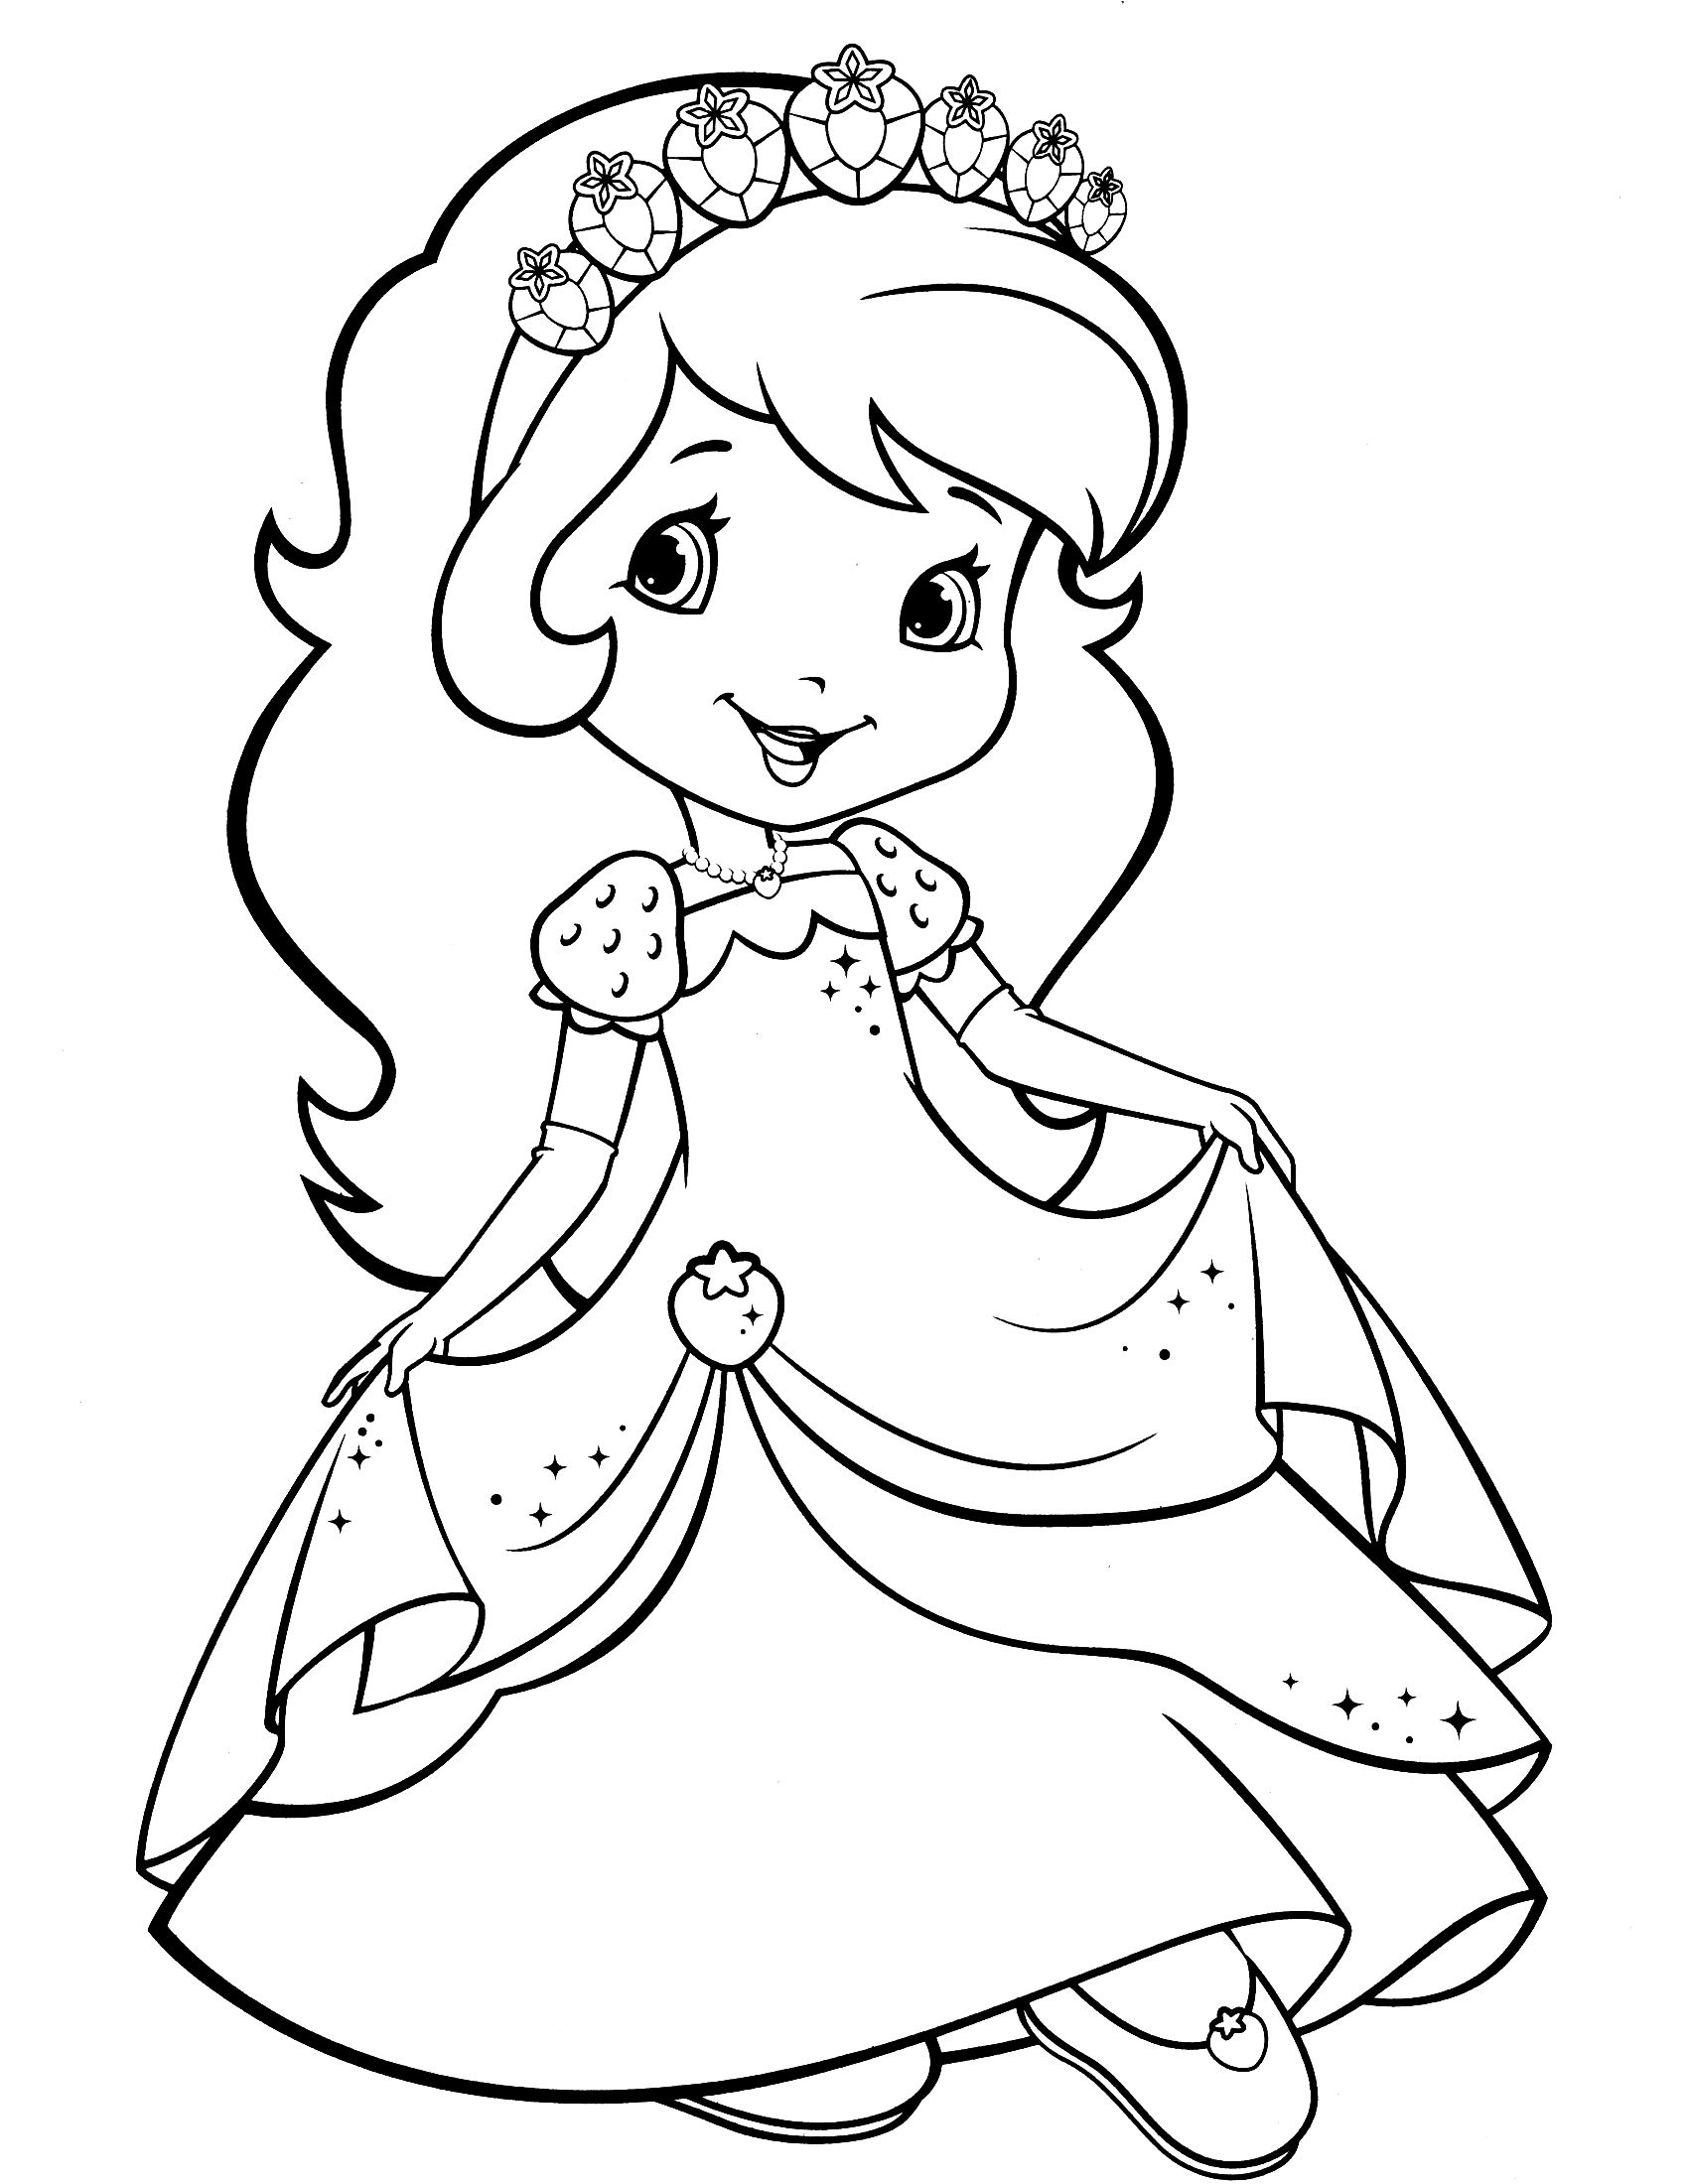 Strawberry Shortcake Coloring Page Ausmalbilder Pinterest